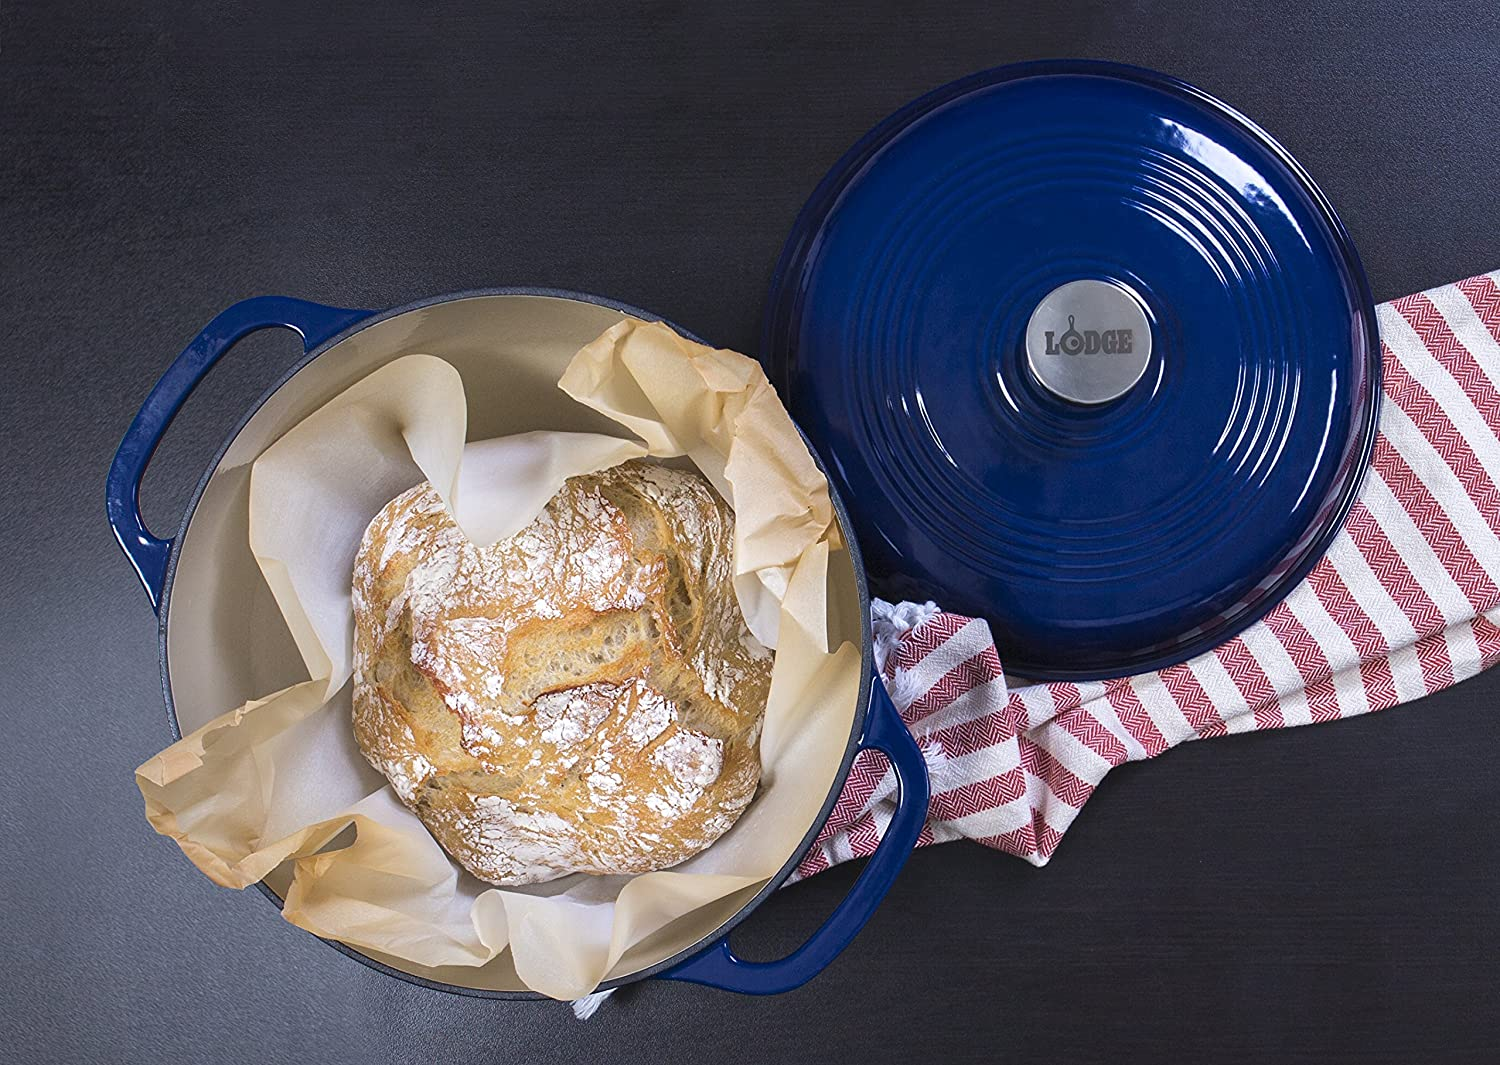 blue lodge dutch oven with baked bread